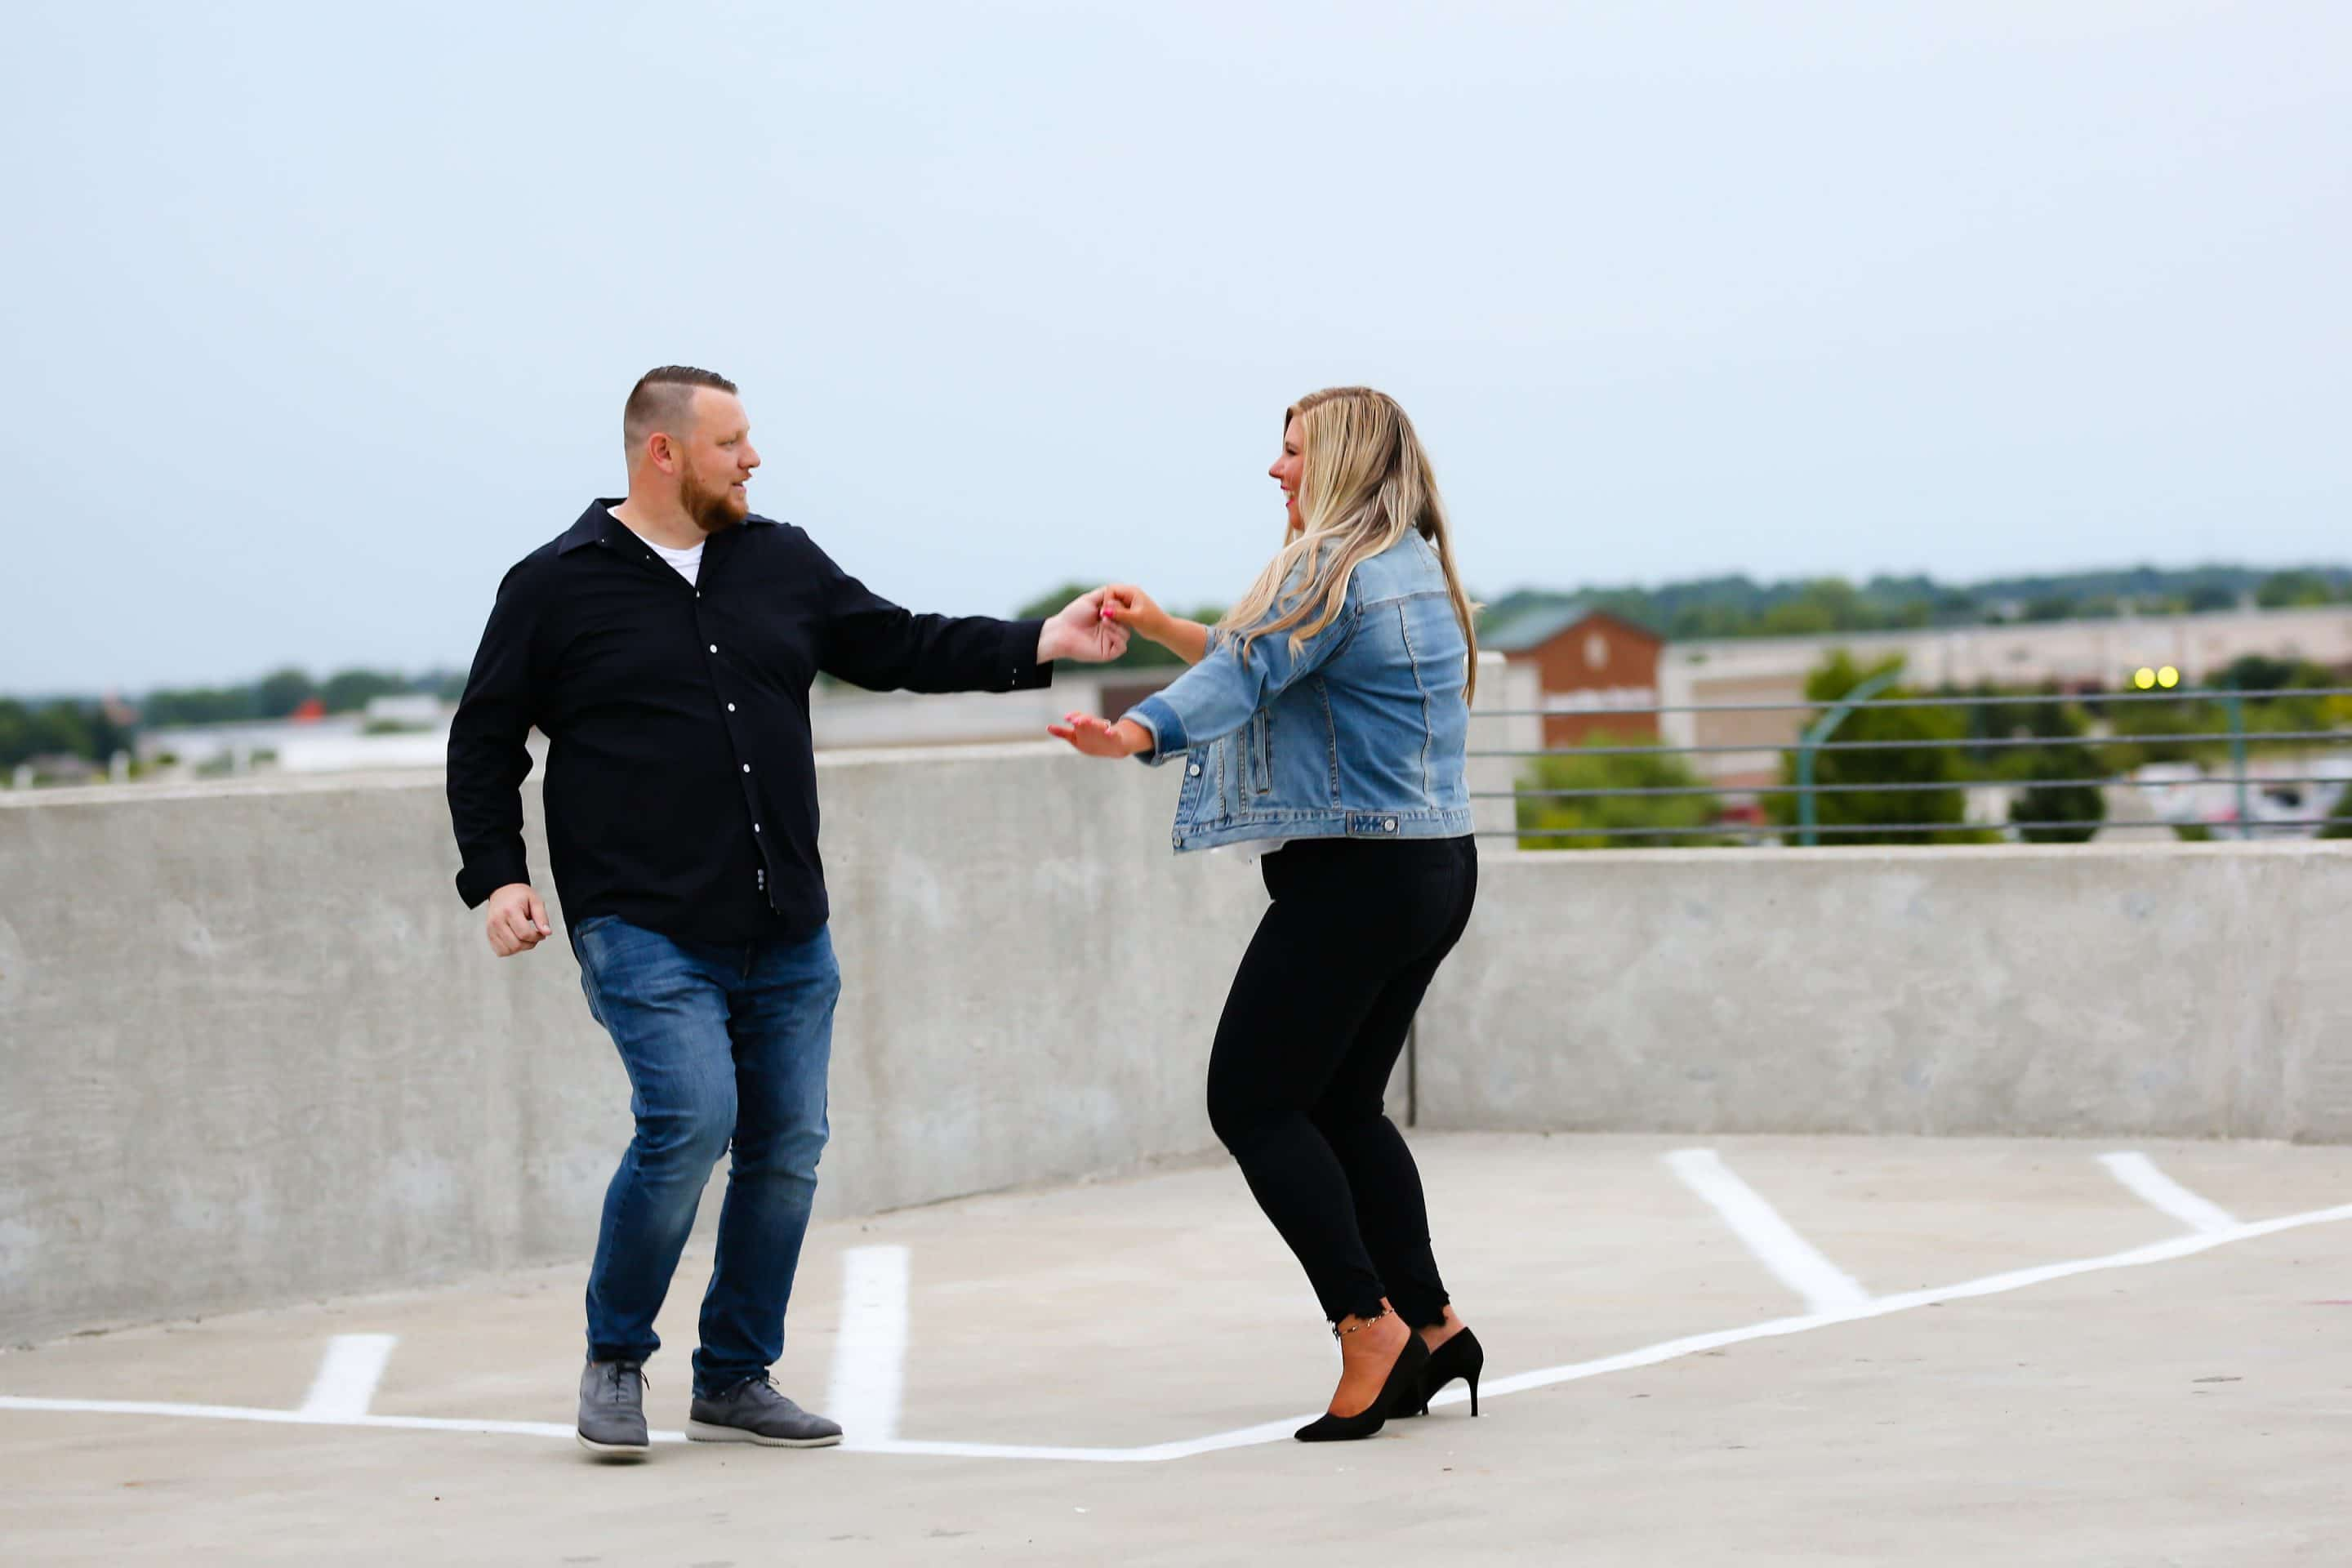 portrait of a couple dancing at a parking garage rooftop